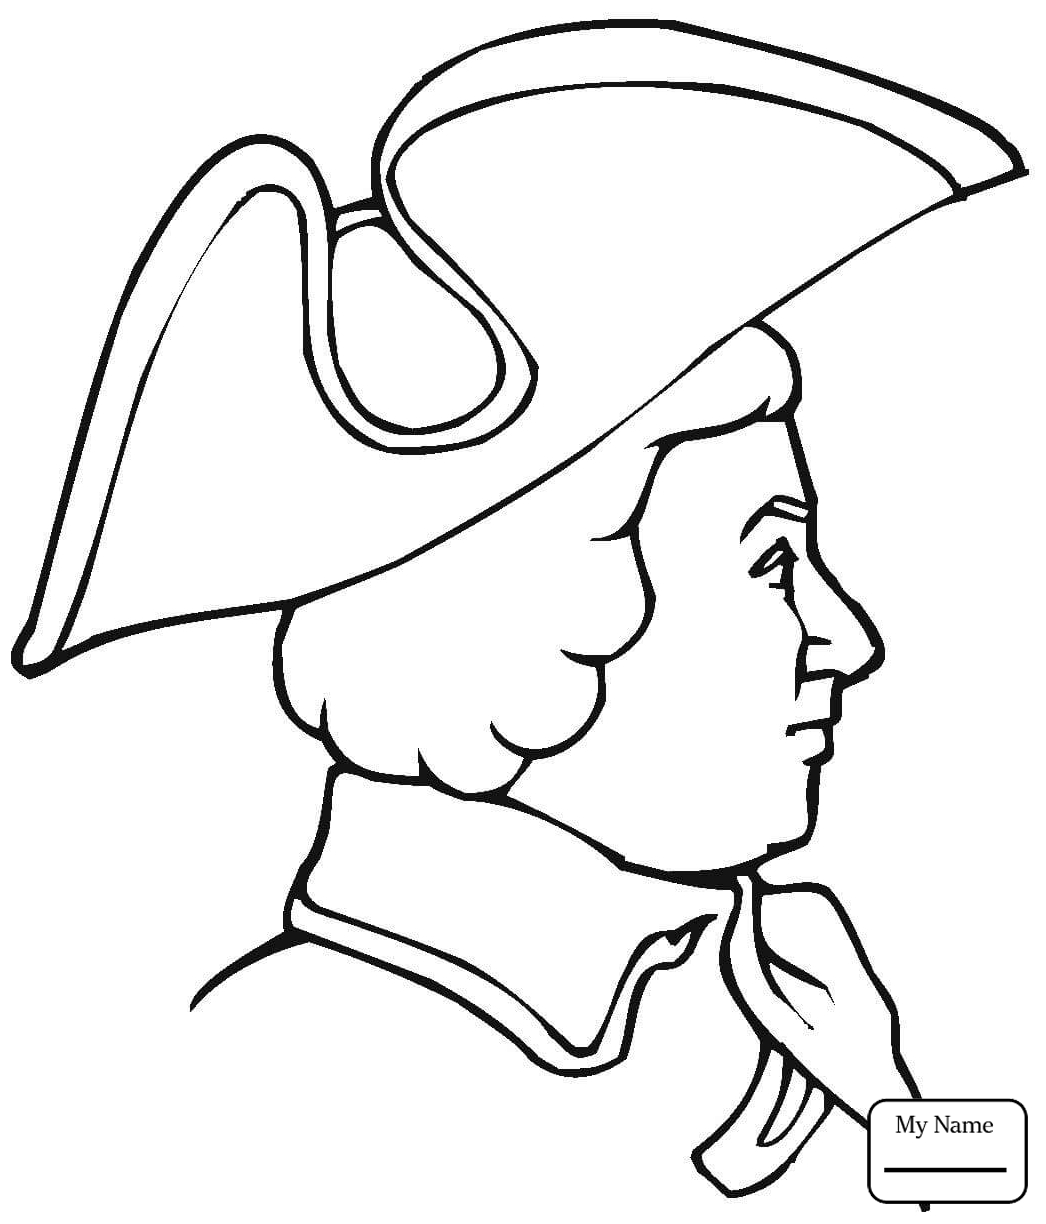 1046x1224 Coloring Pages Boston Tea Party American Revolutionary War History